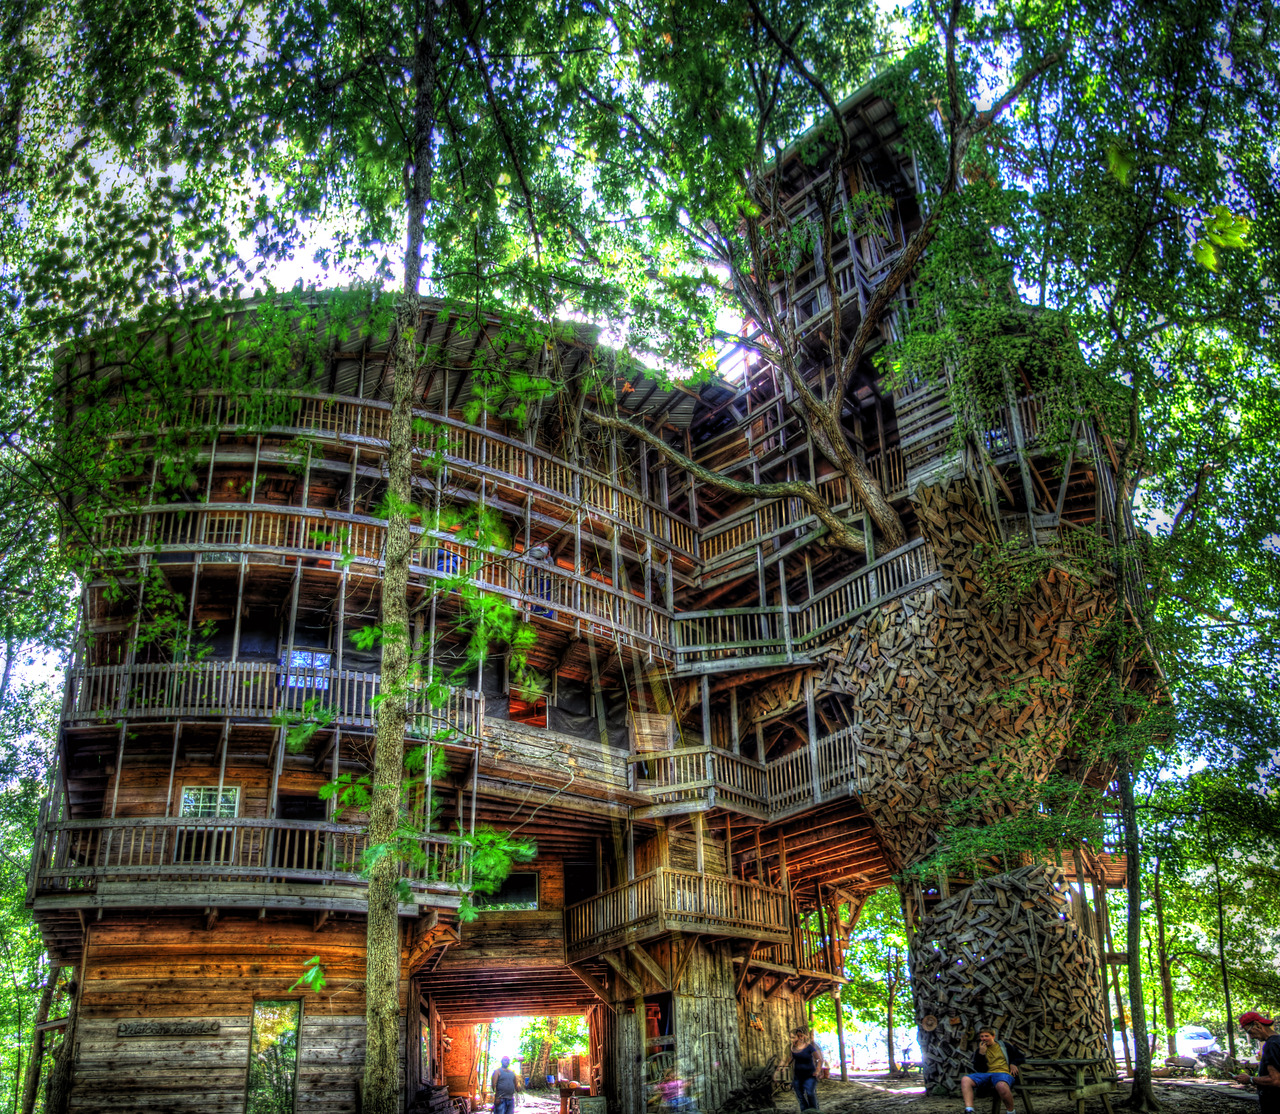 Amazing Tree House Design Wallpaper Download cool HD wallpapers